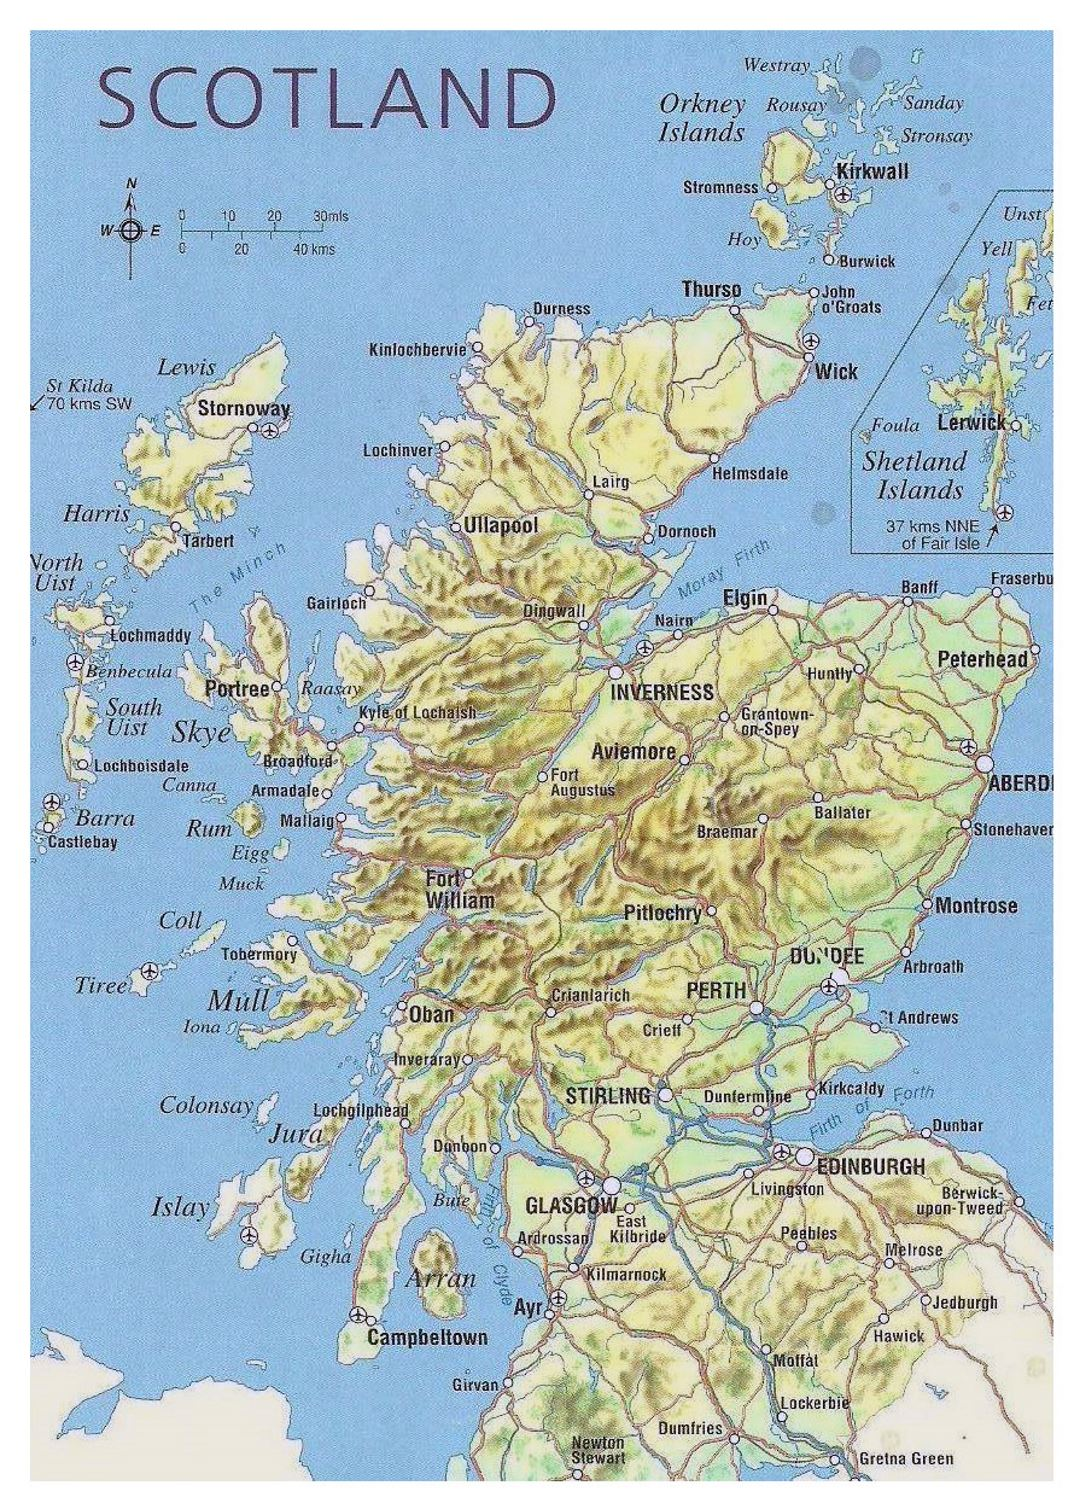 Map Of Scotland With Relief Roads Major Cities And Airports - World map with cities